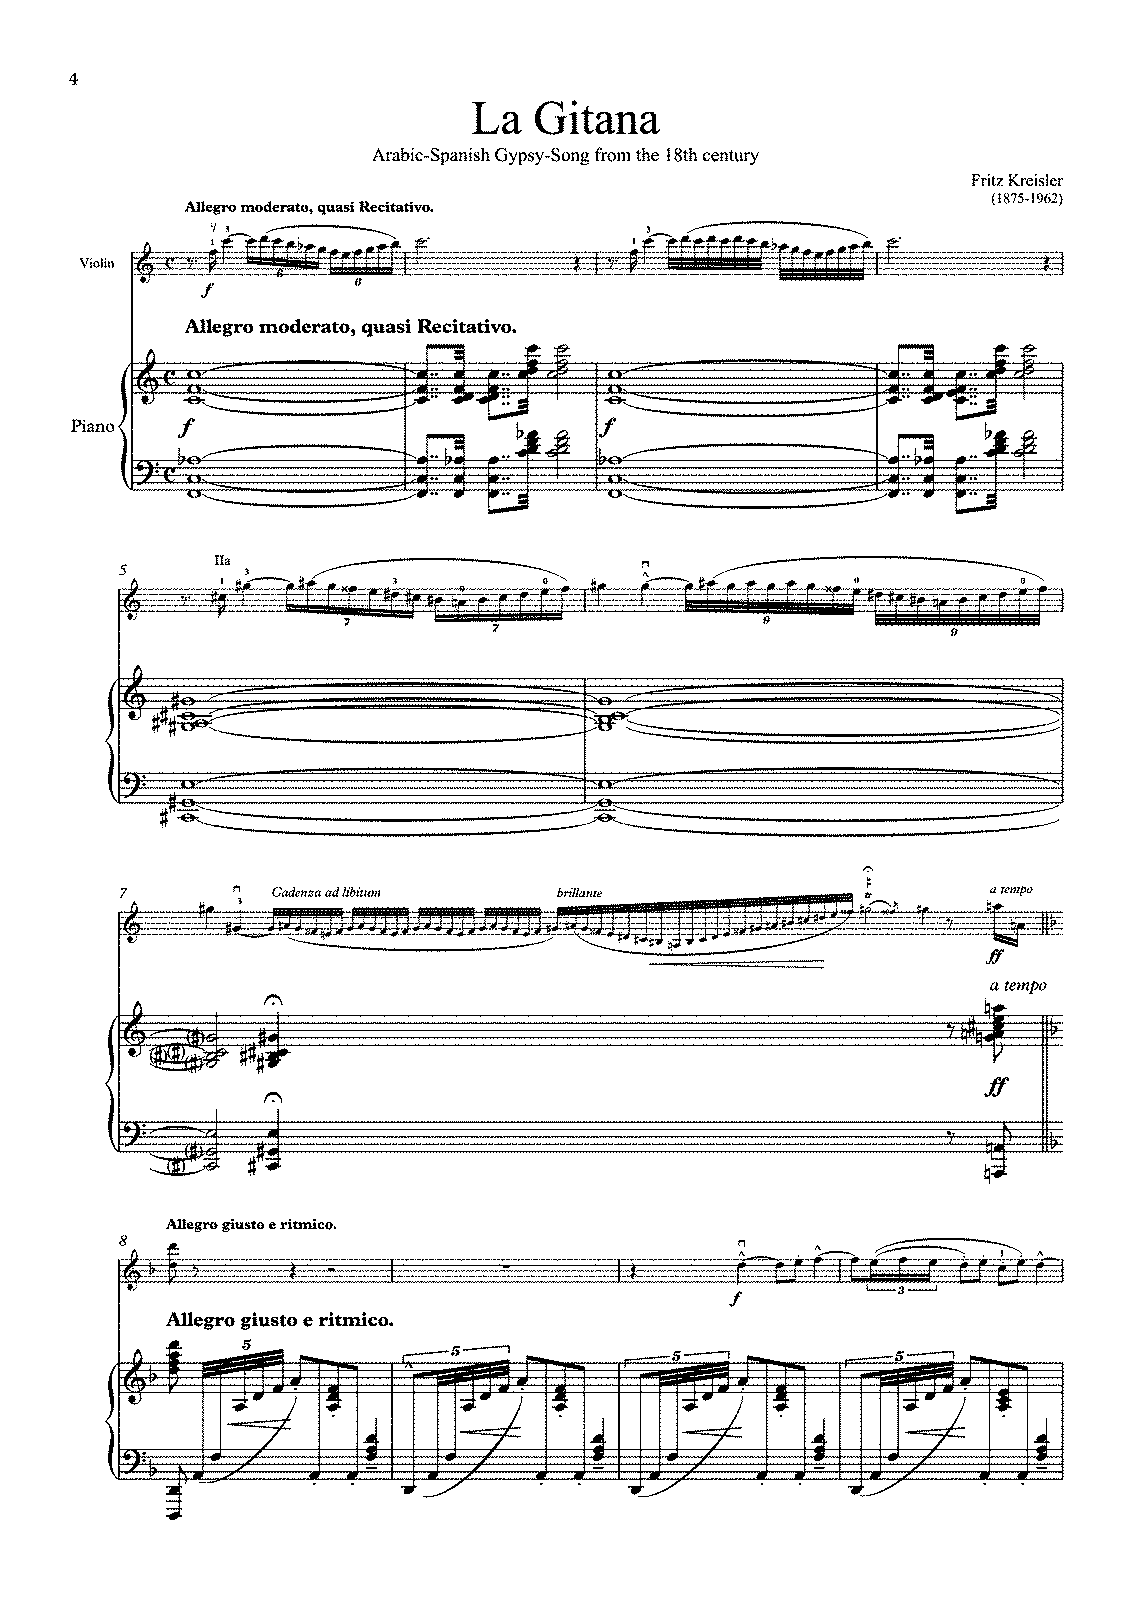 PMLP498485-Kreisler La Gitana first four pages.pdf